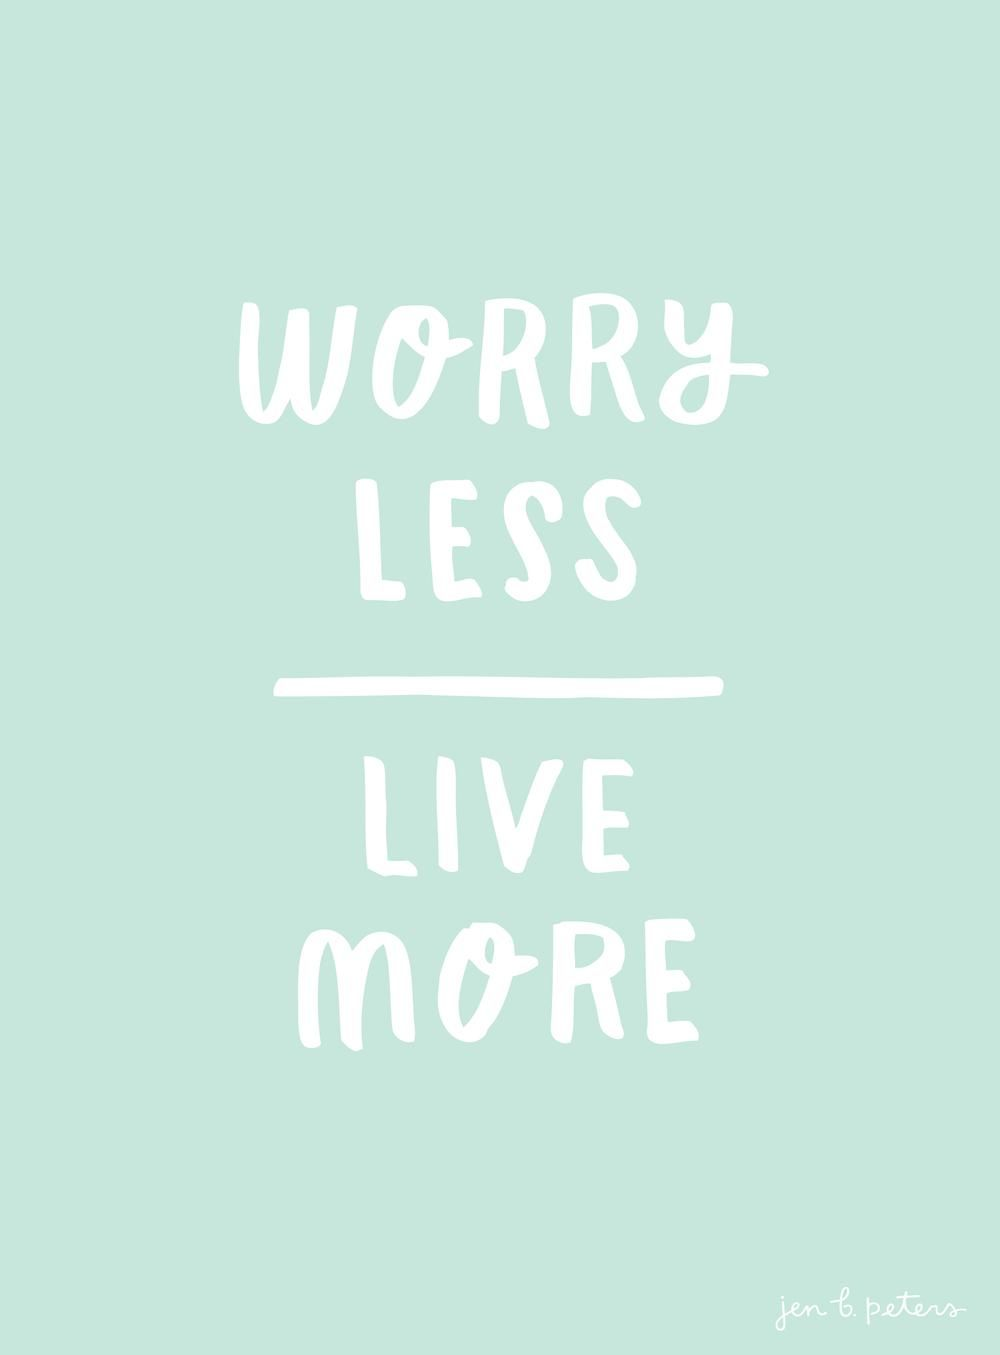 Cheesy Love Quotes Worry Less  Live More  Words I Definitely Need To Learn To Live